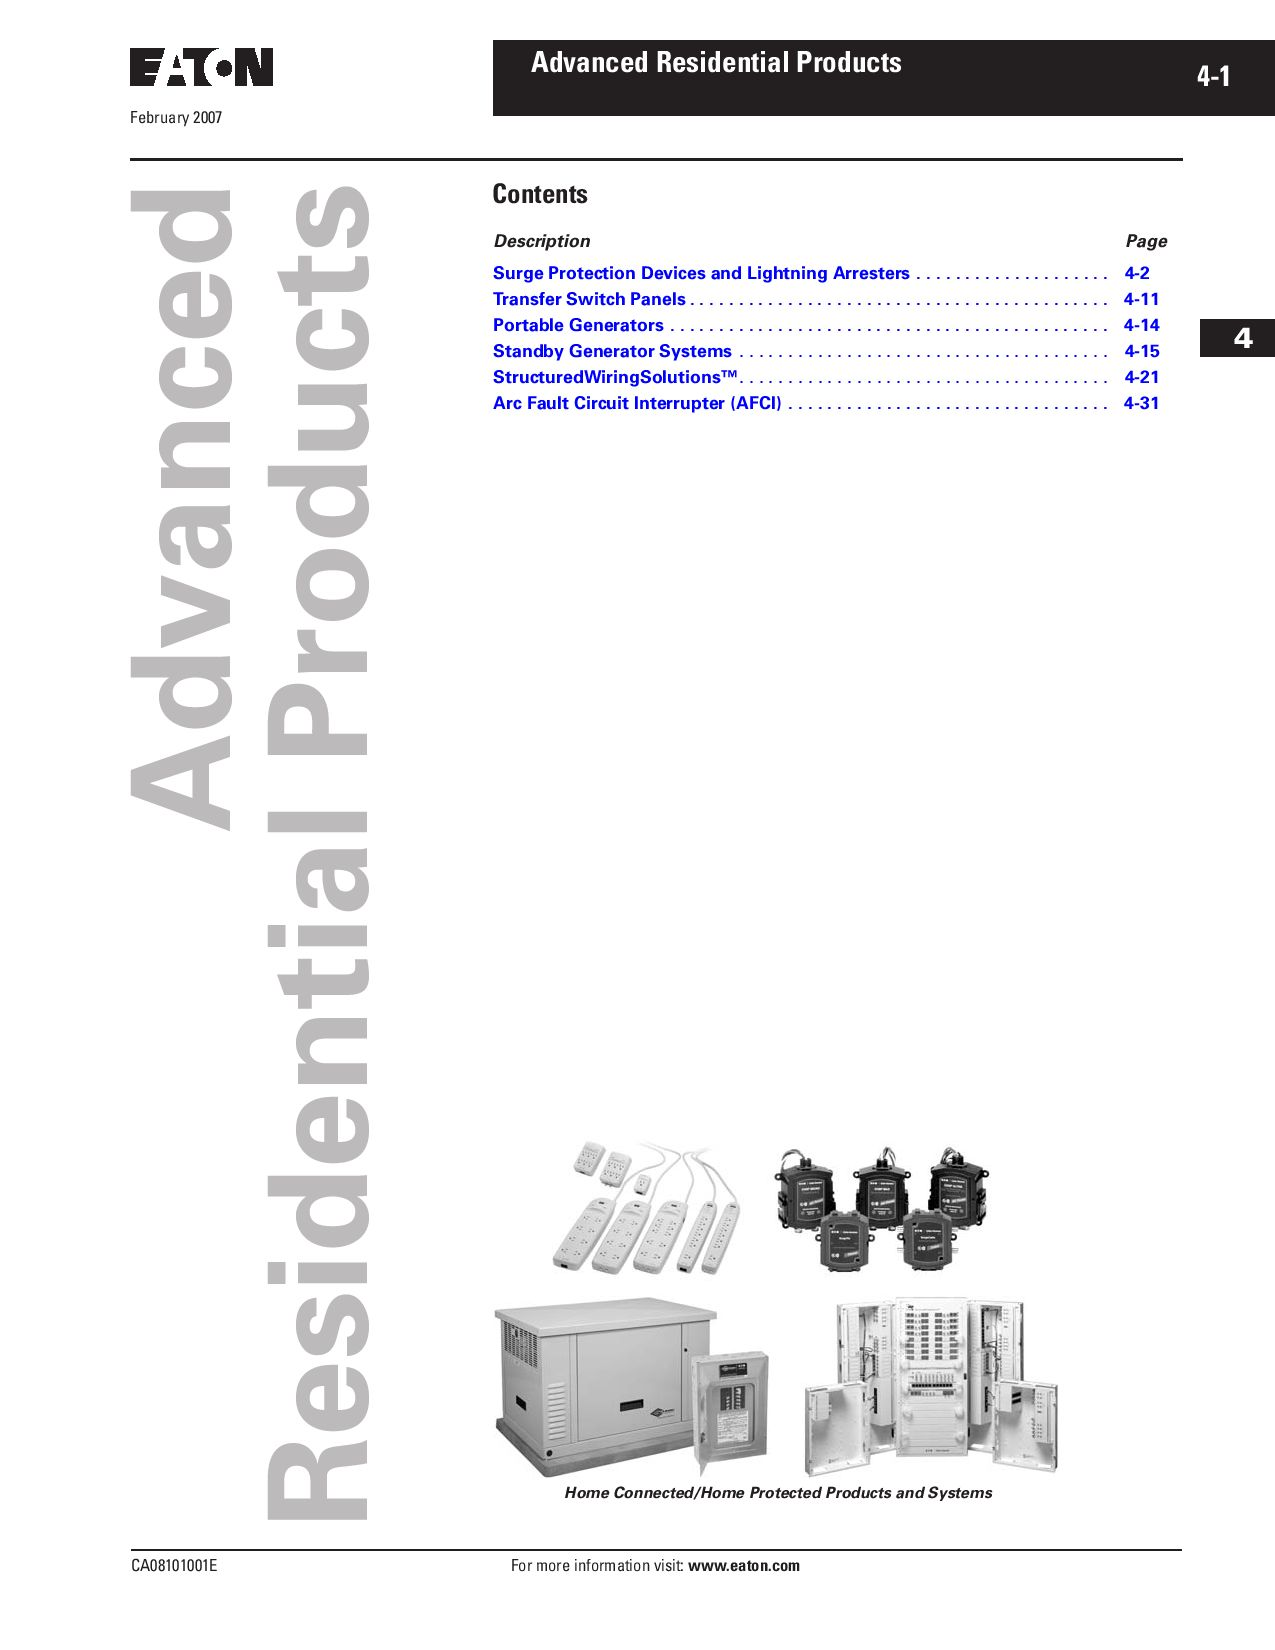 Tab 04 Advanced Residential Products By Greg Campbell Issuu Pass Seymour Arcfault Circuit Interrupter Afci